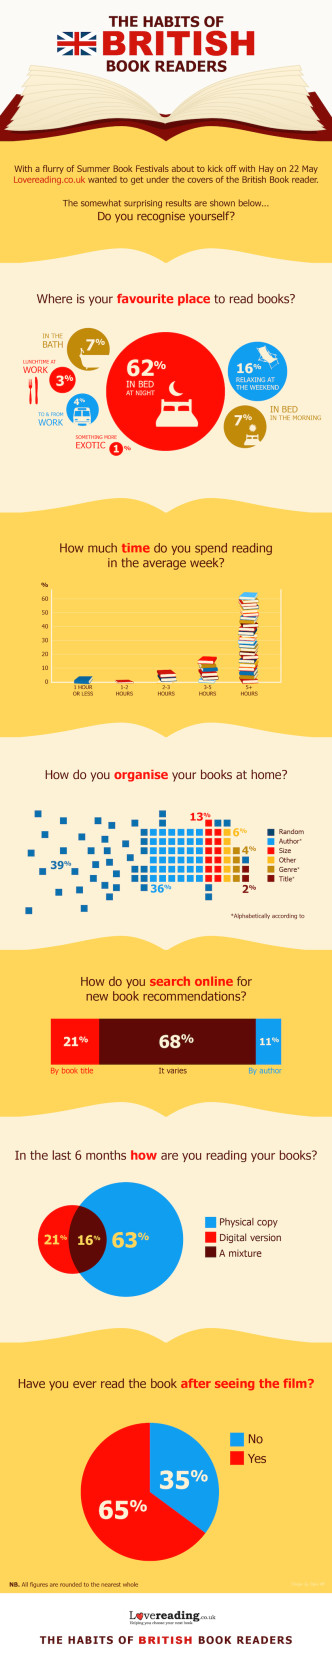 The habits of the British book reader - infographic